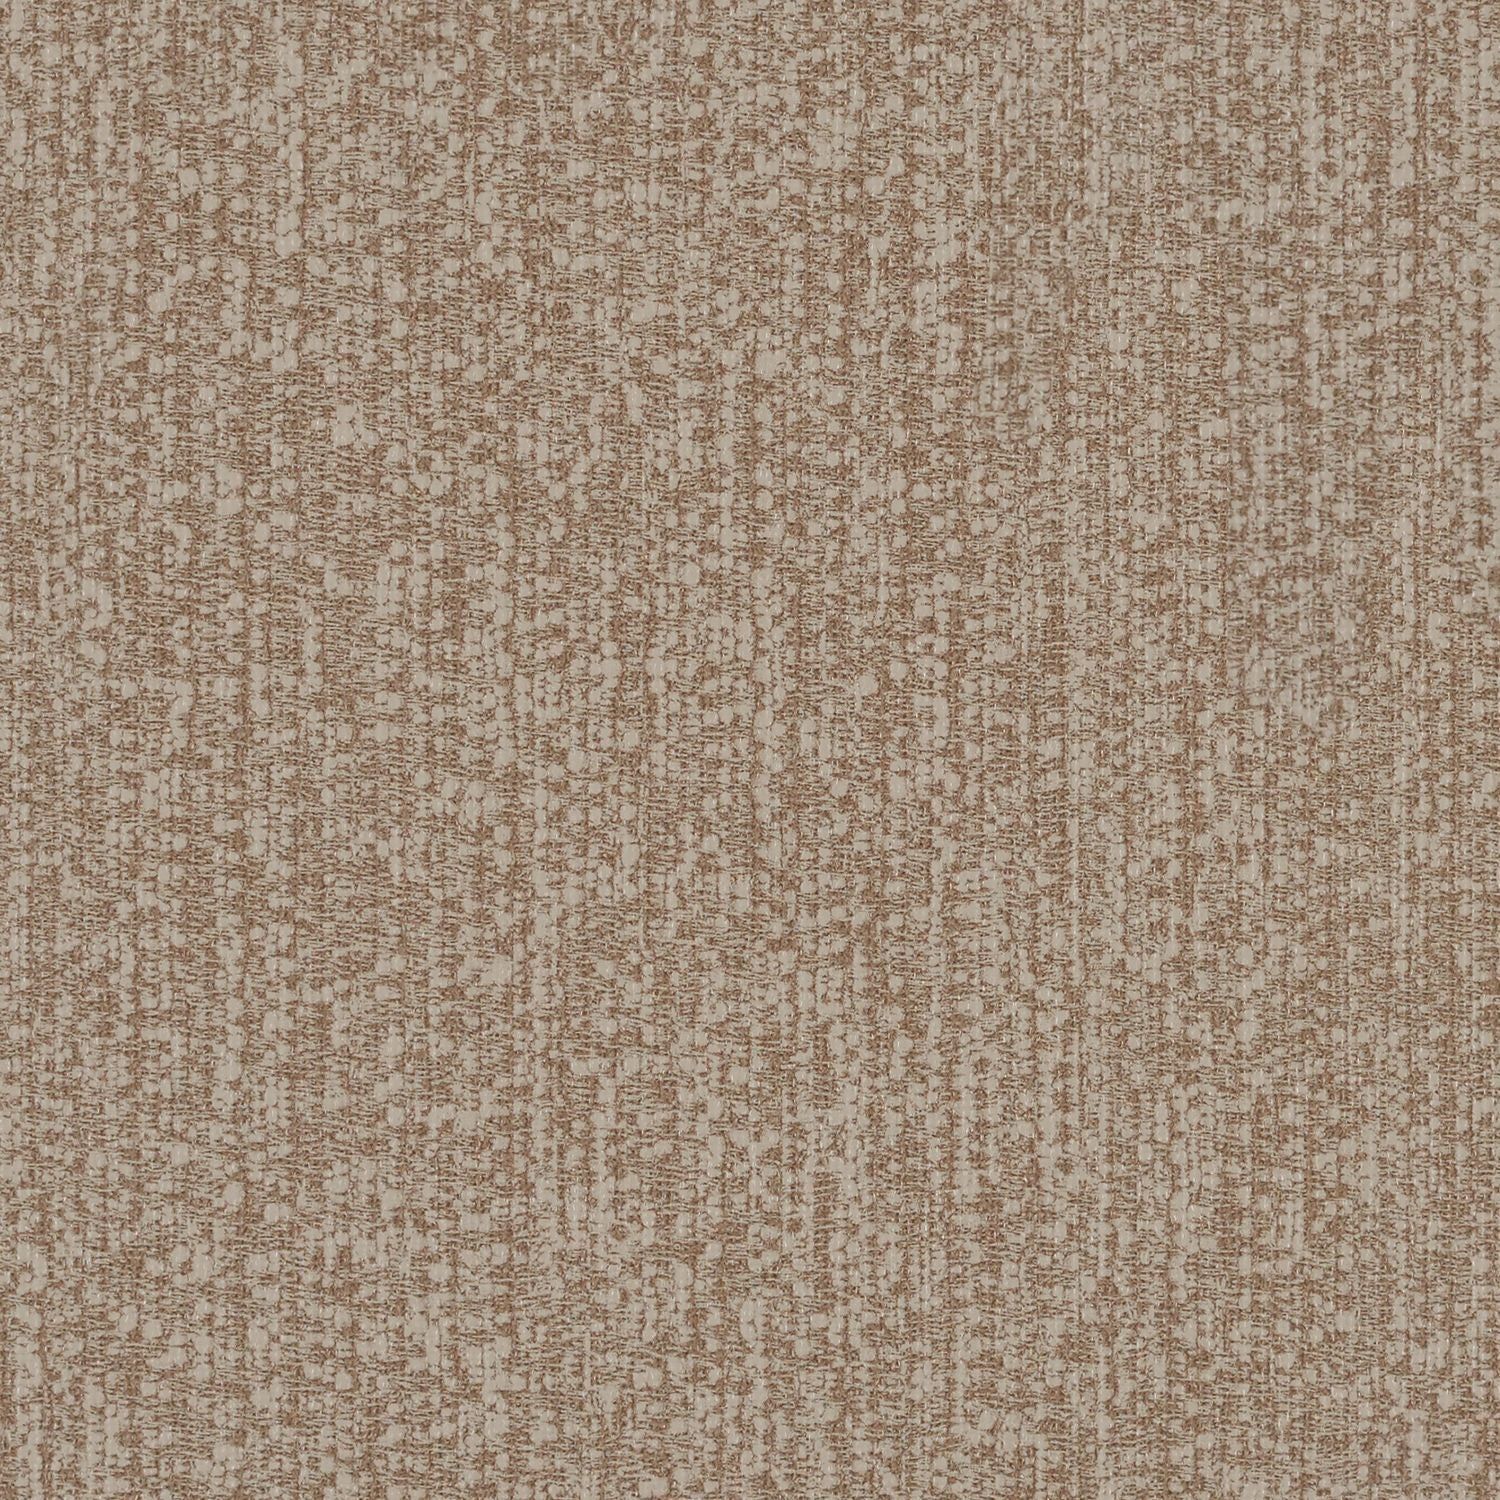 Monotex - Bark Cloth - 4053 - 07